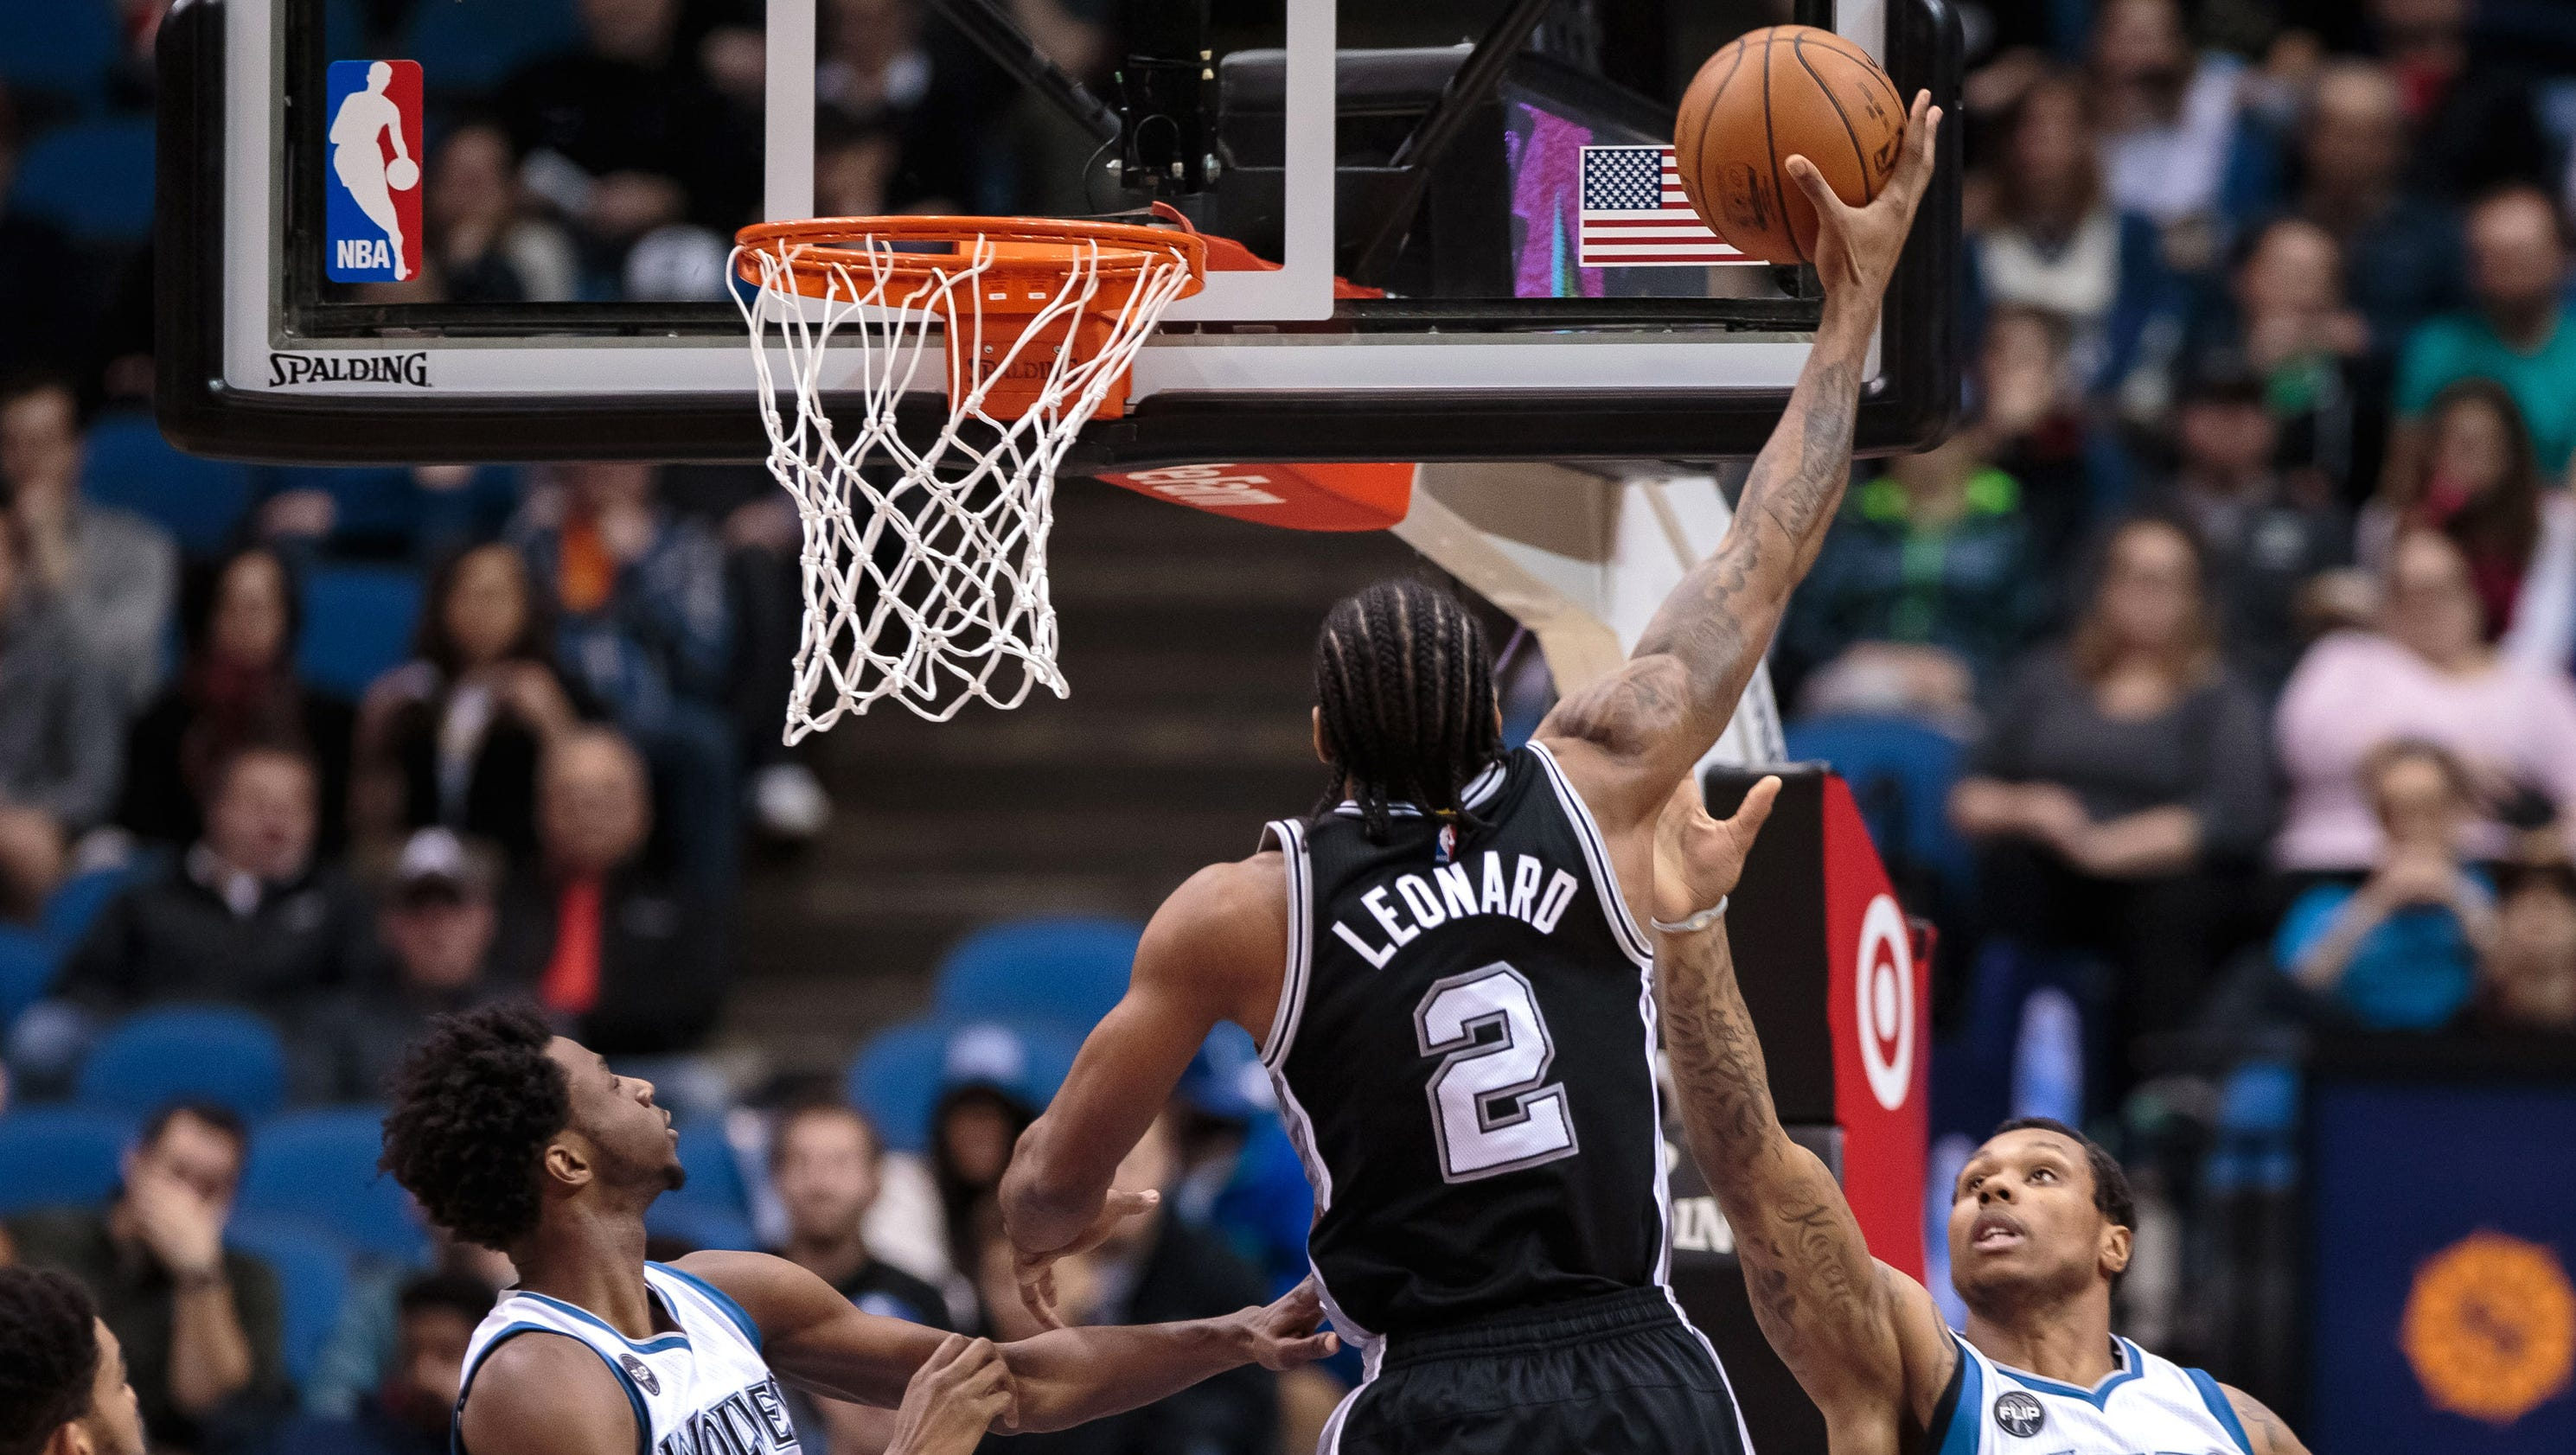 Nba Mvp Kawhi Leonard Surging Up Rankings